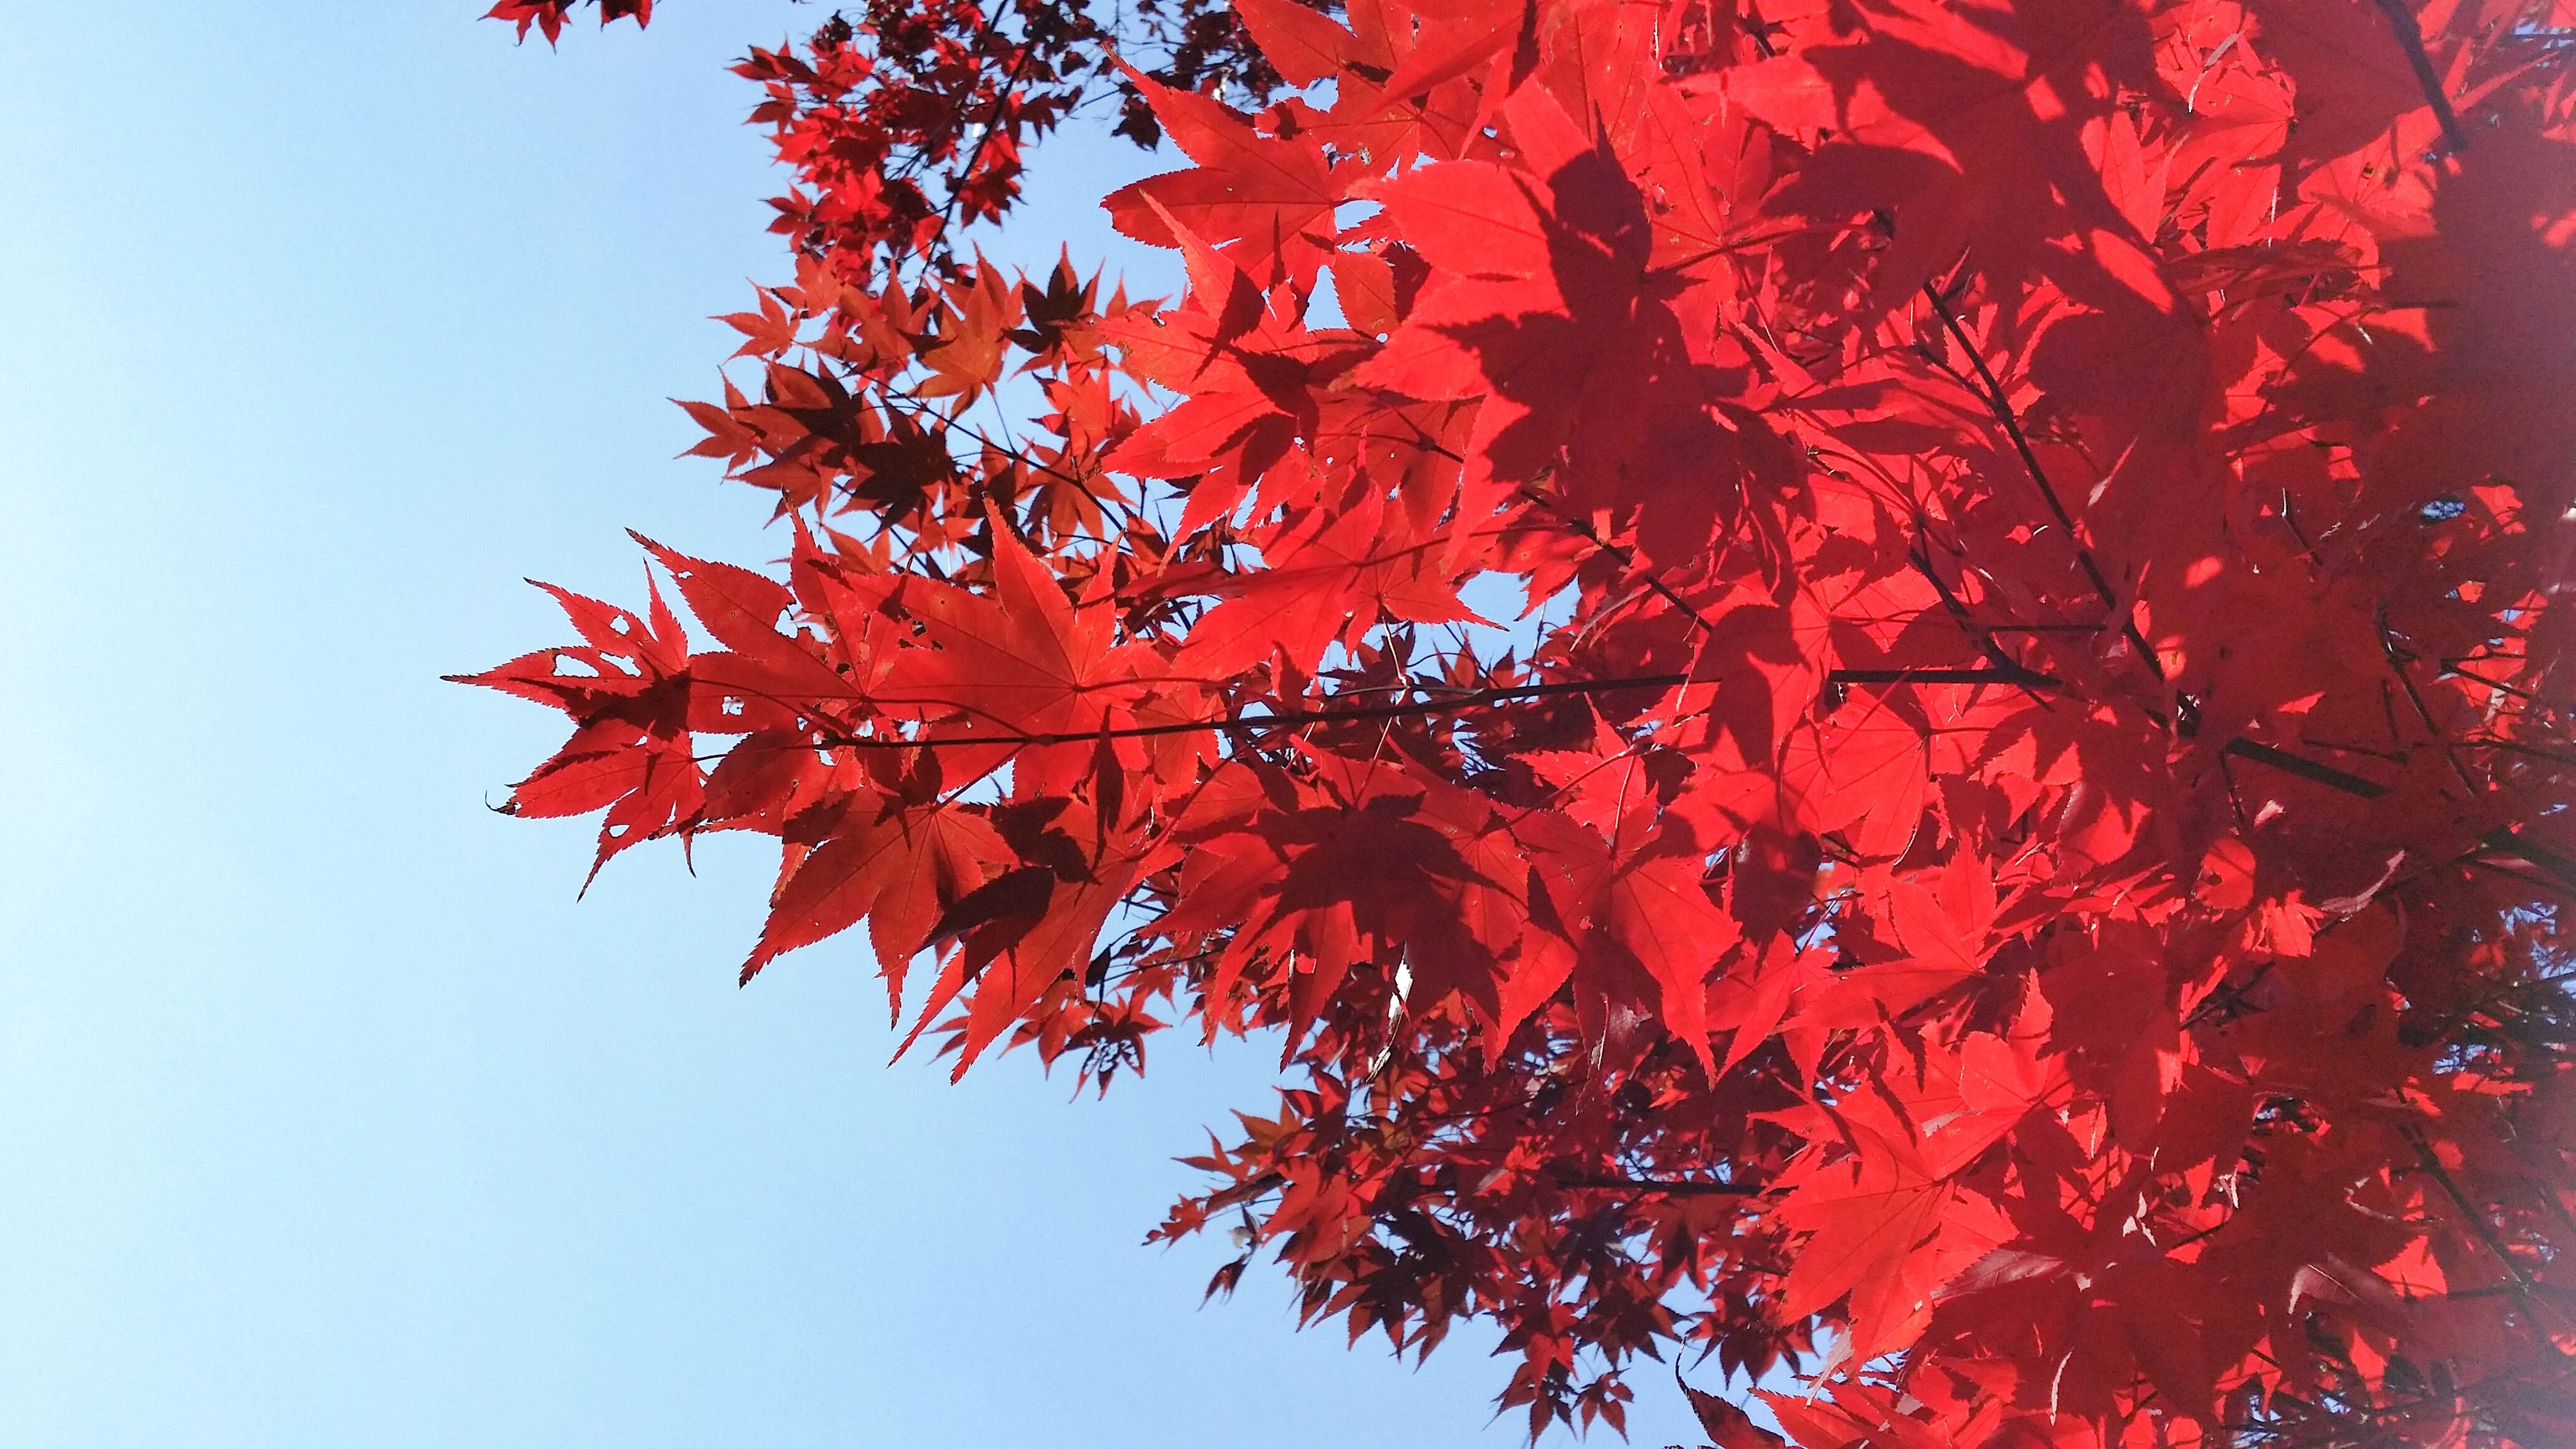 autumn, red, change, leaf, tree, season, branch, low angle view, growth, nature, orange color, beauty in nature, clear sky, maple leaf, tranquility, leaves, maple tree, day, outdoors, close-up